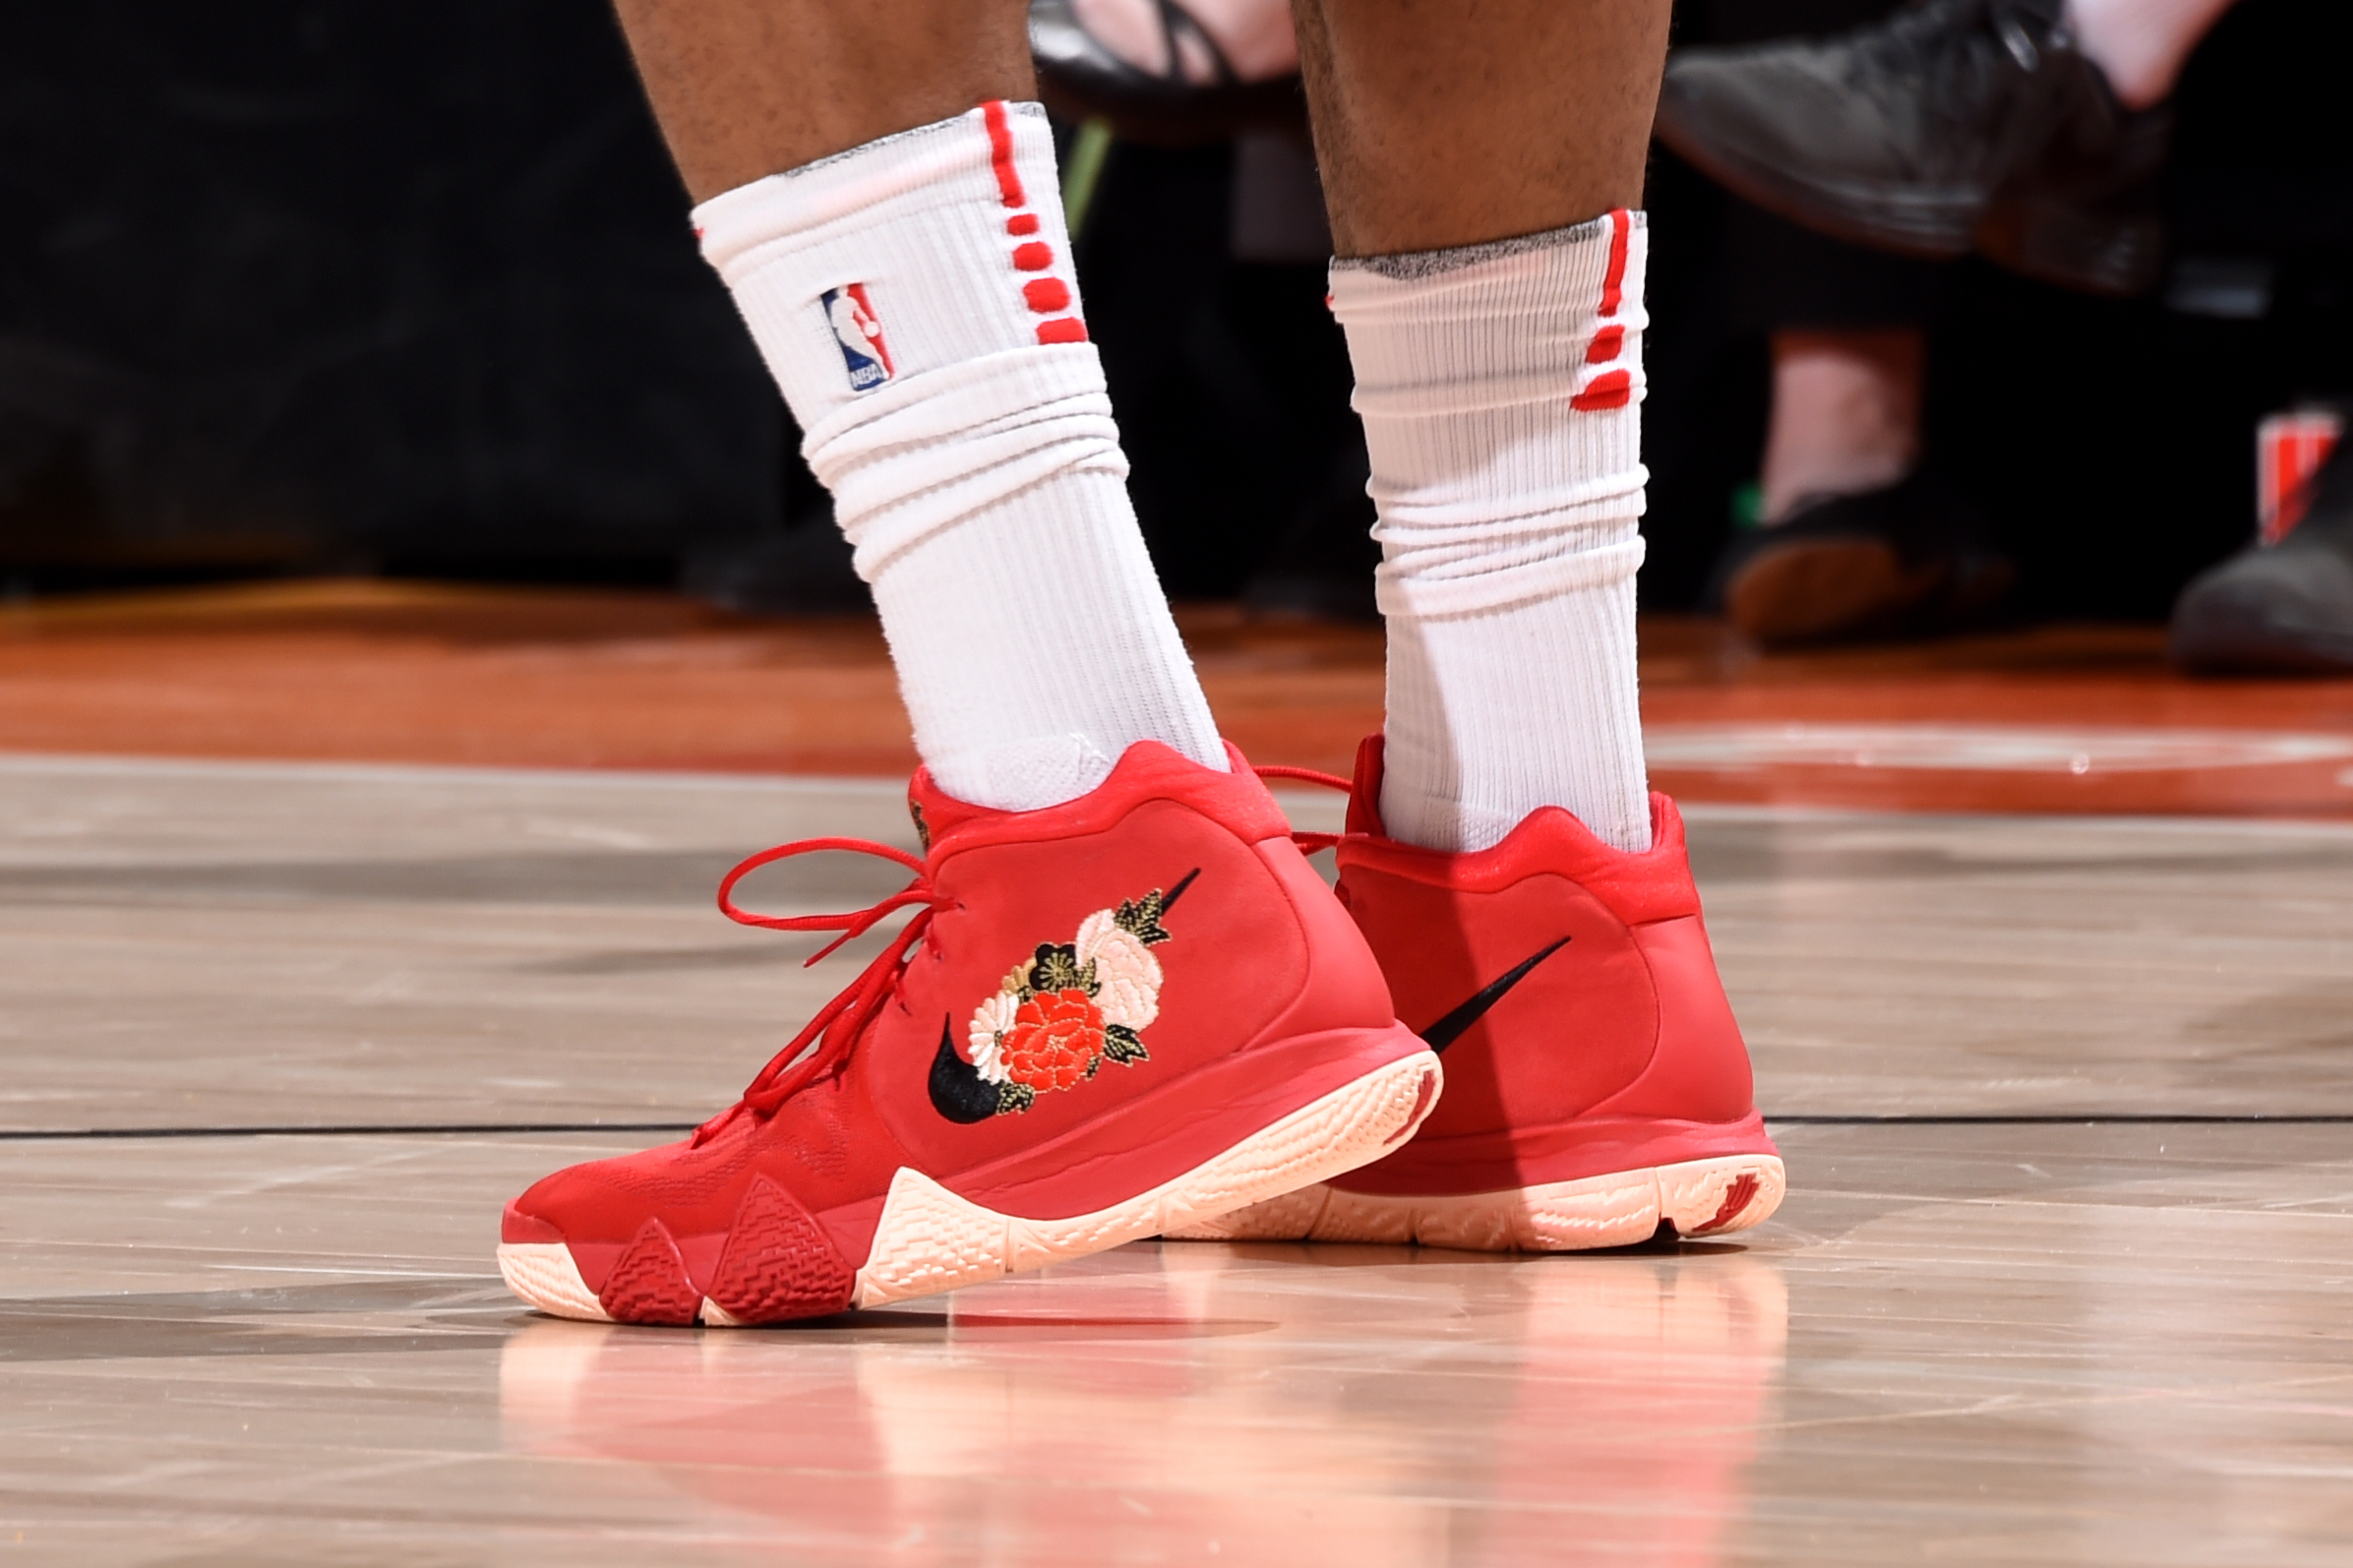 e7a6eabb The sneakers of P.J. Tucker of the Houston Rockets in Game 3 of the Western  Conference semifinals against the Utah Jazz on May 4 at the Vivint Smart  Home ...